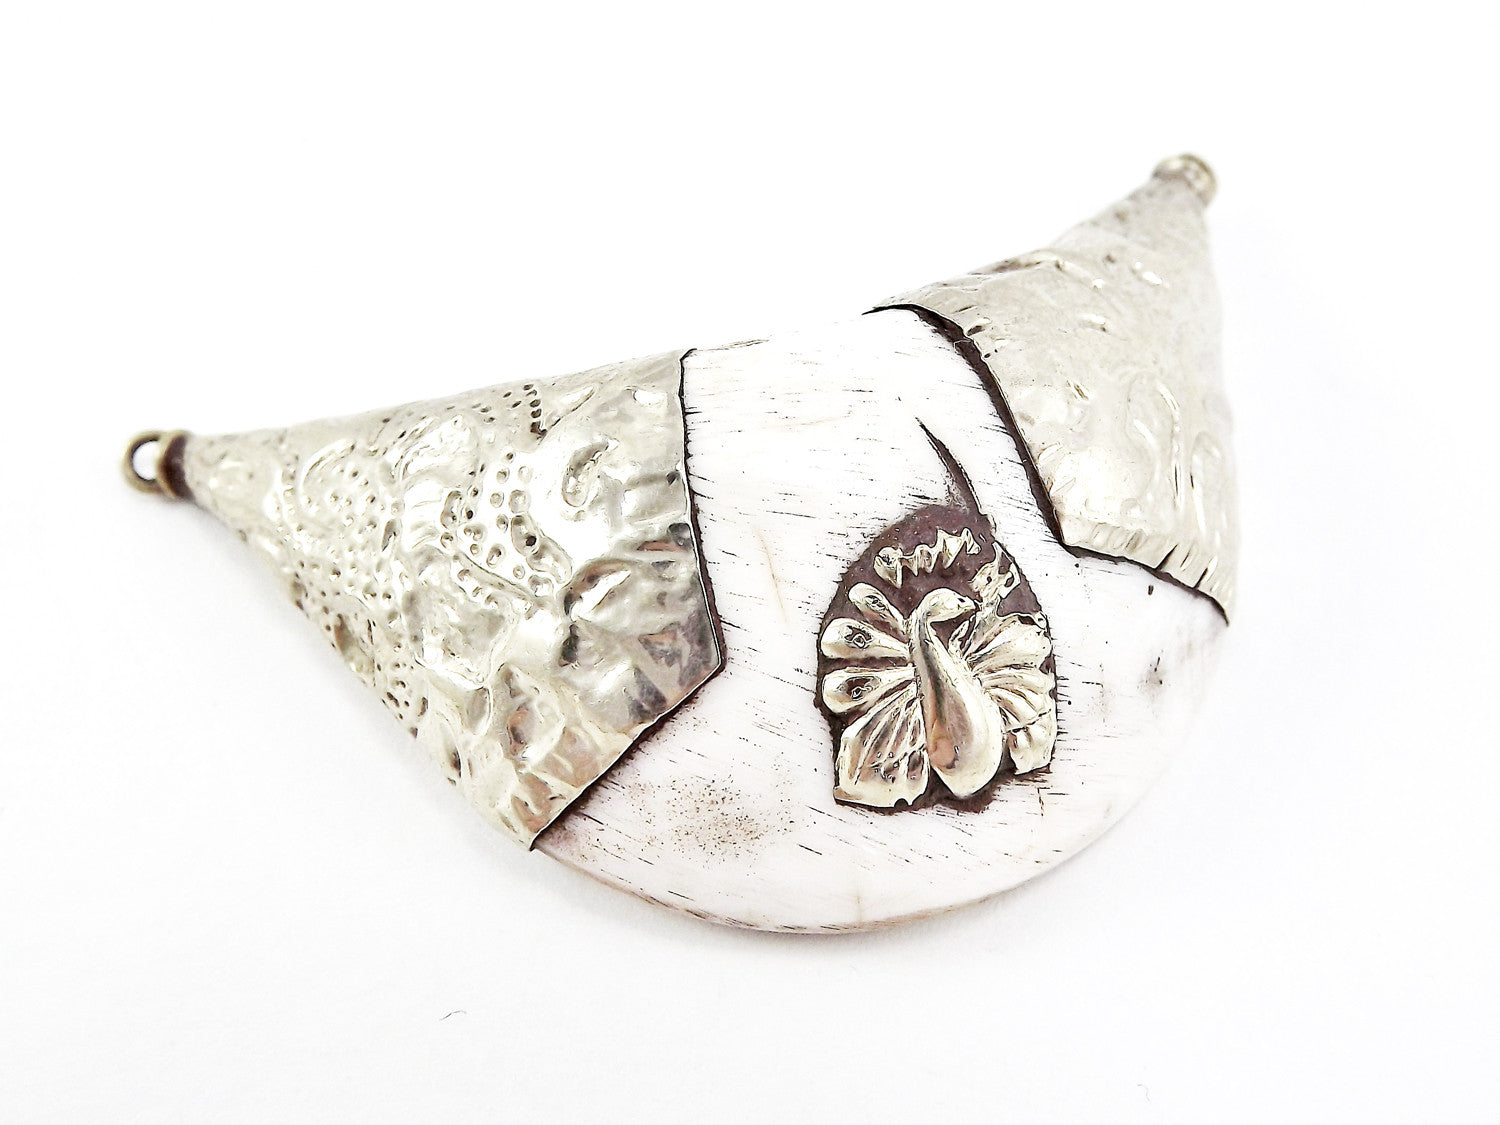 Large Conch Shell Tribal Necklace Collar Pendant - Bird Detail - Nepalese Handmade Silver Plated Brass